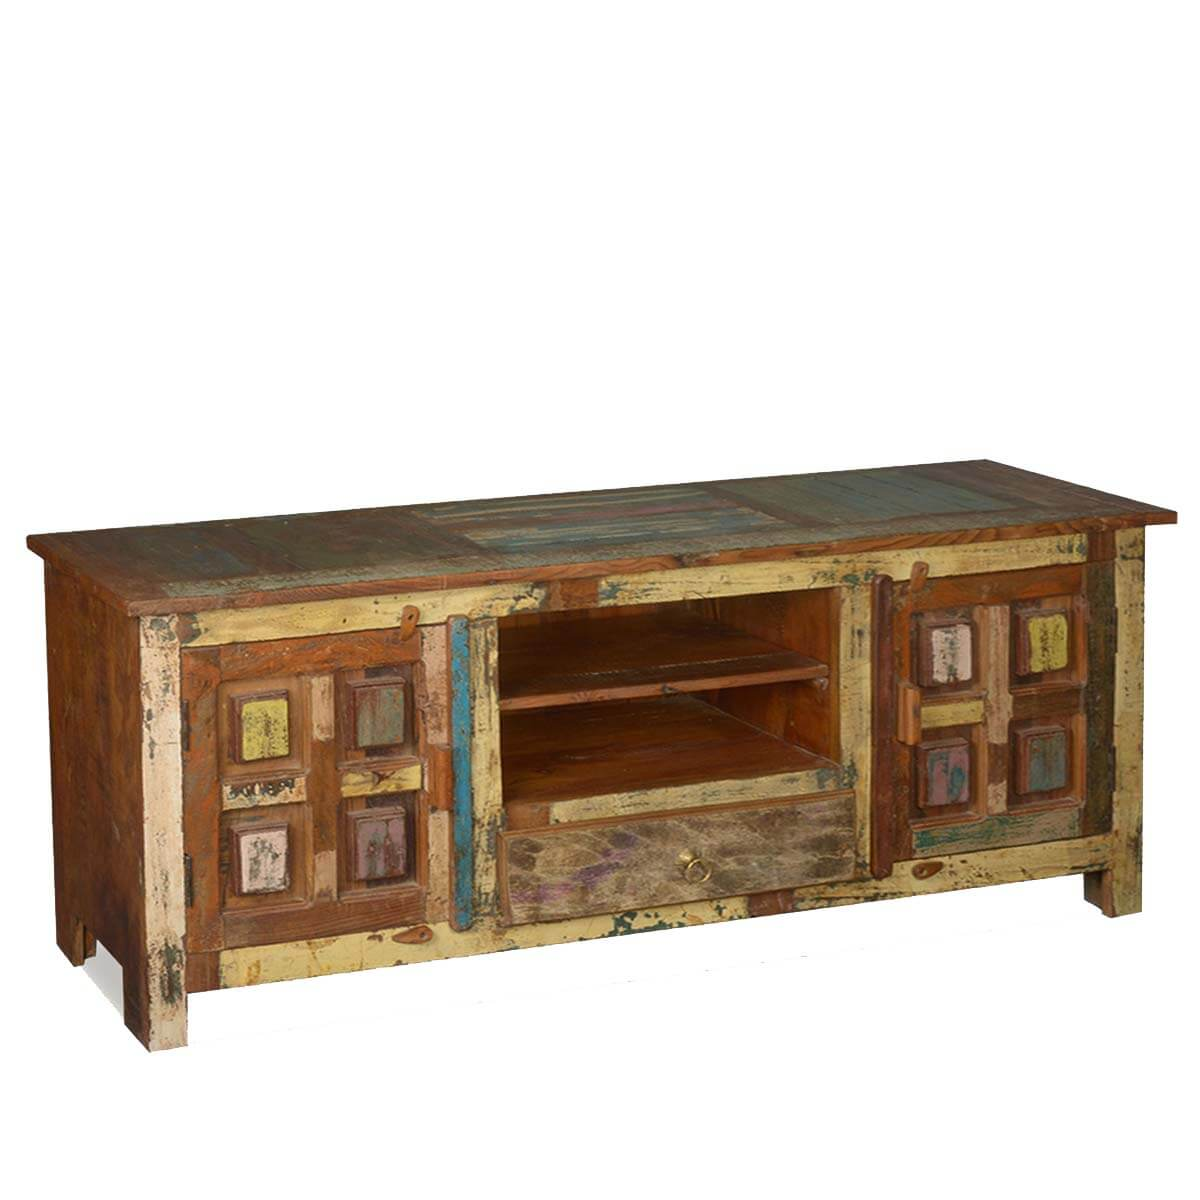 Solid wood handcrafted rustic tv stand media console Rustic tv stands